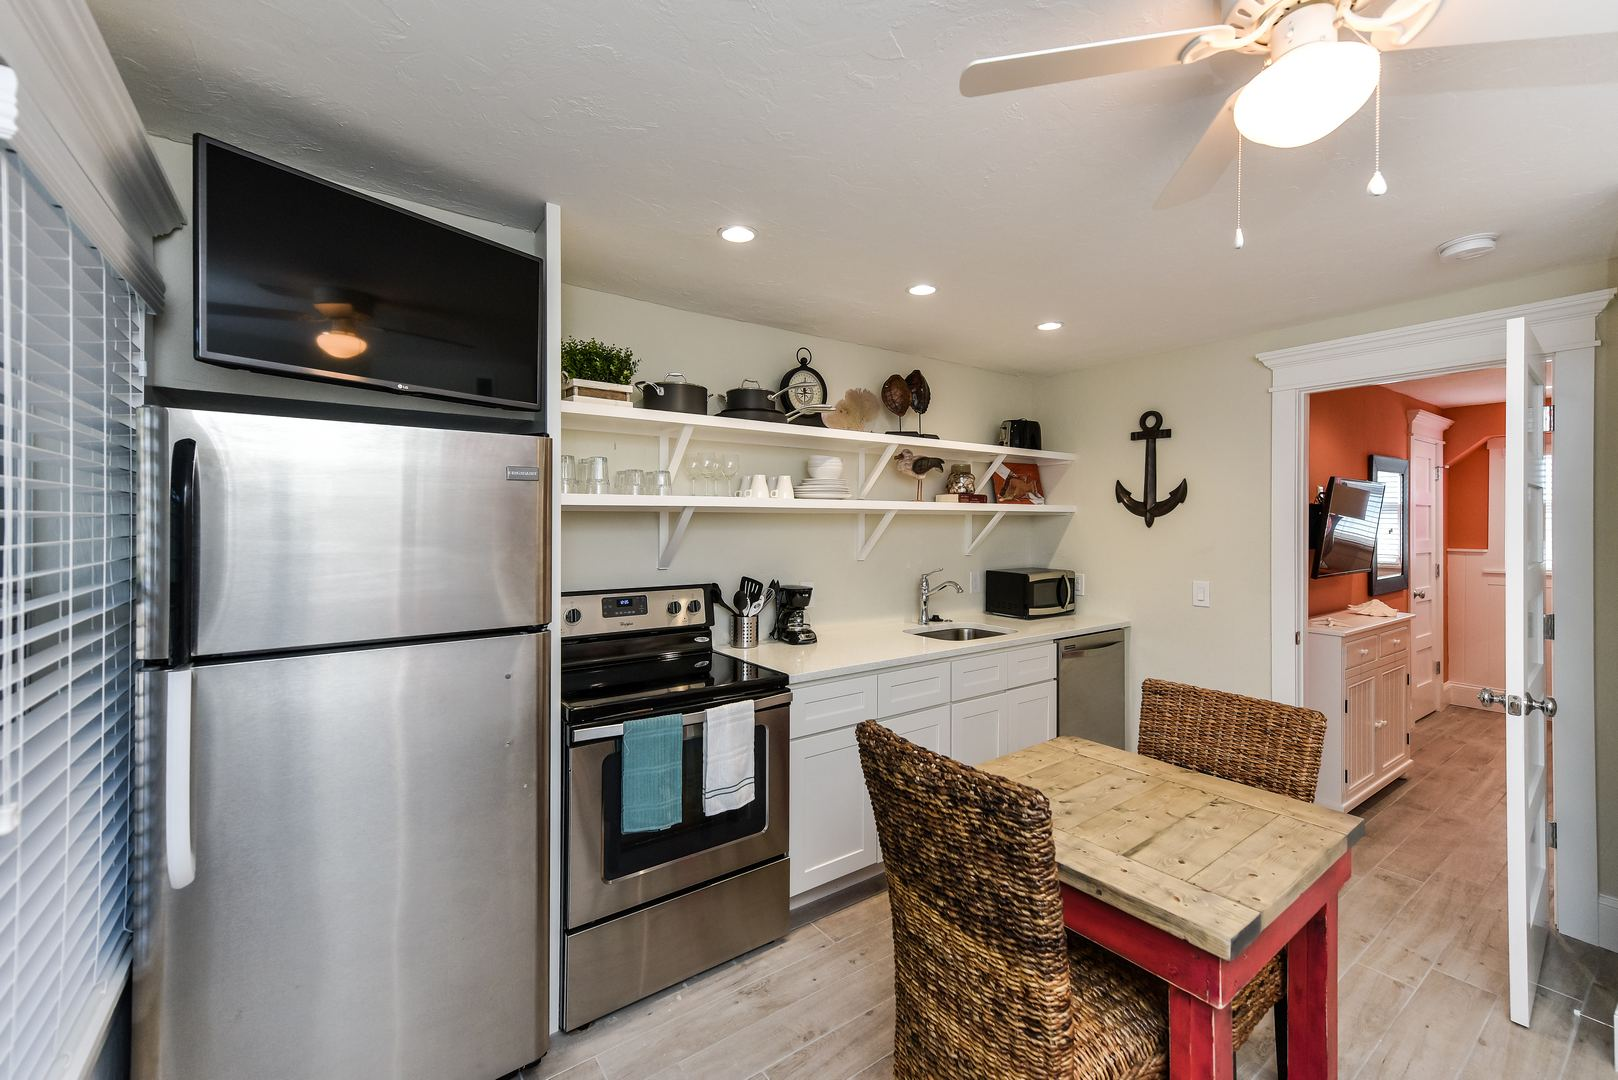 Full Kitchen with Everything you Need - Feel at Home